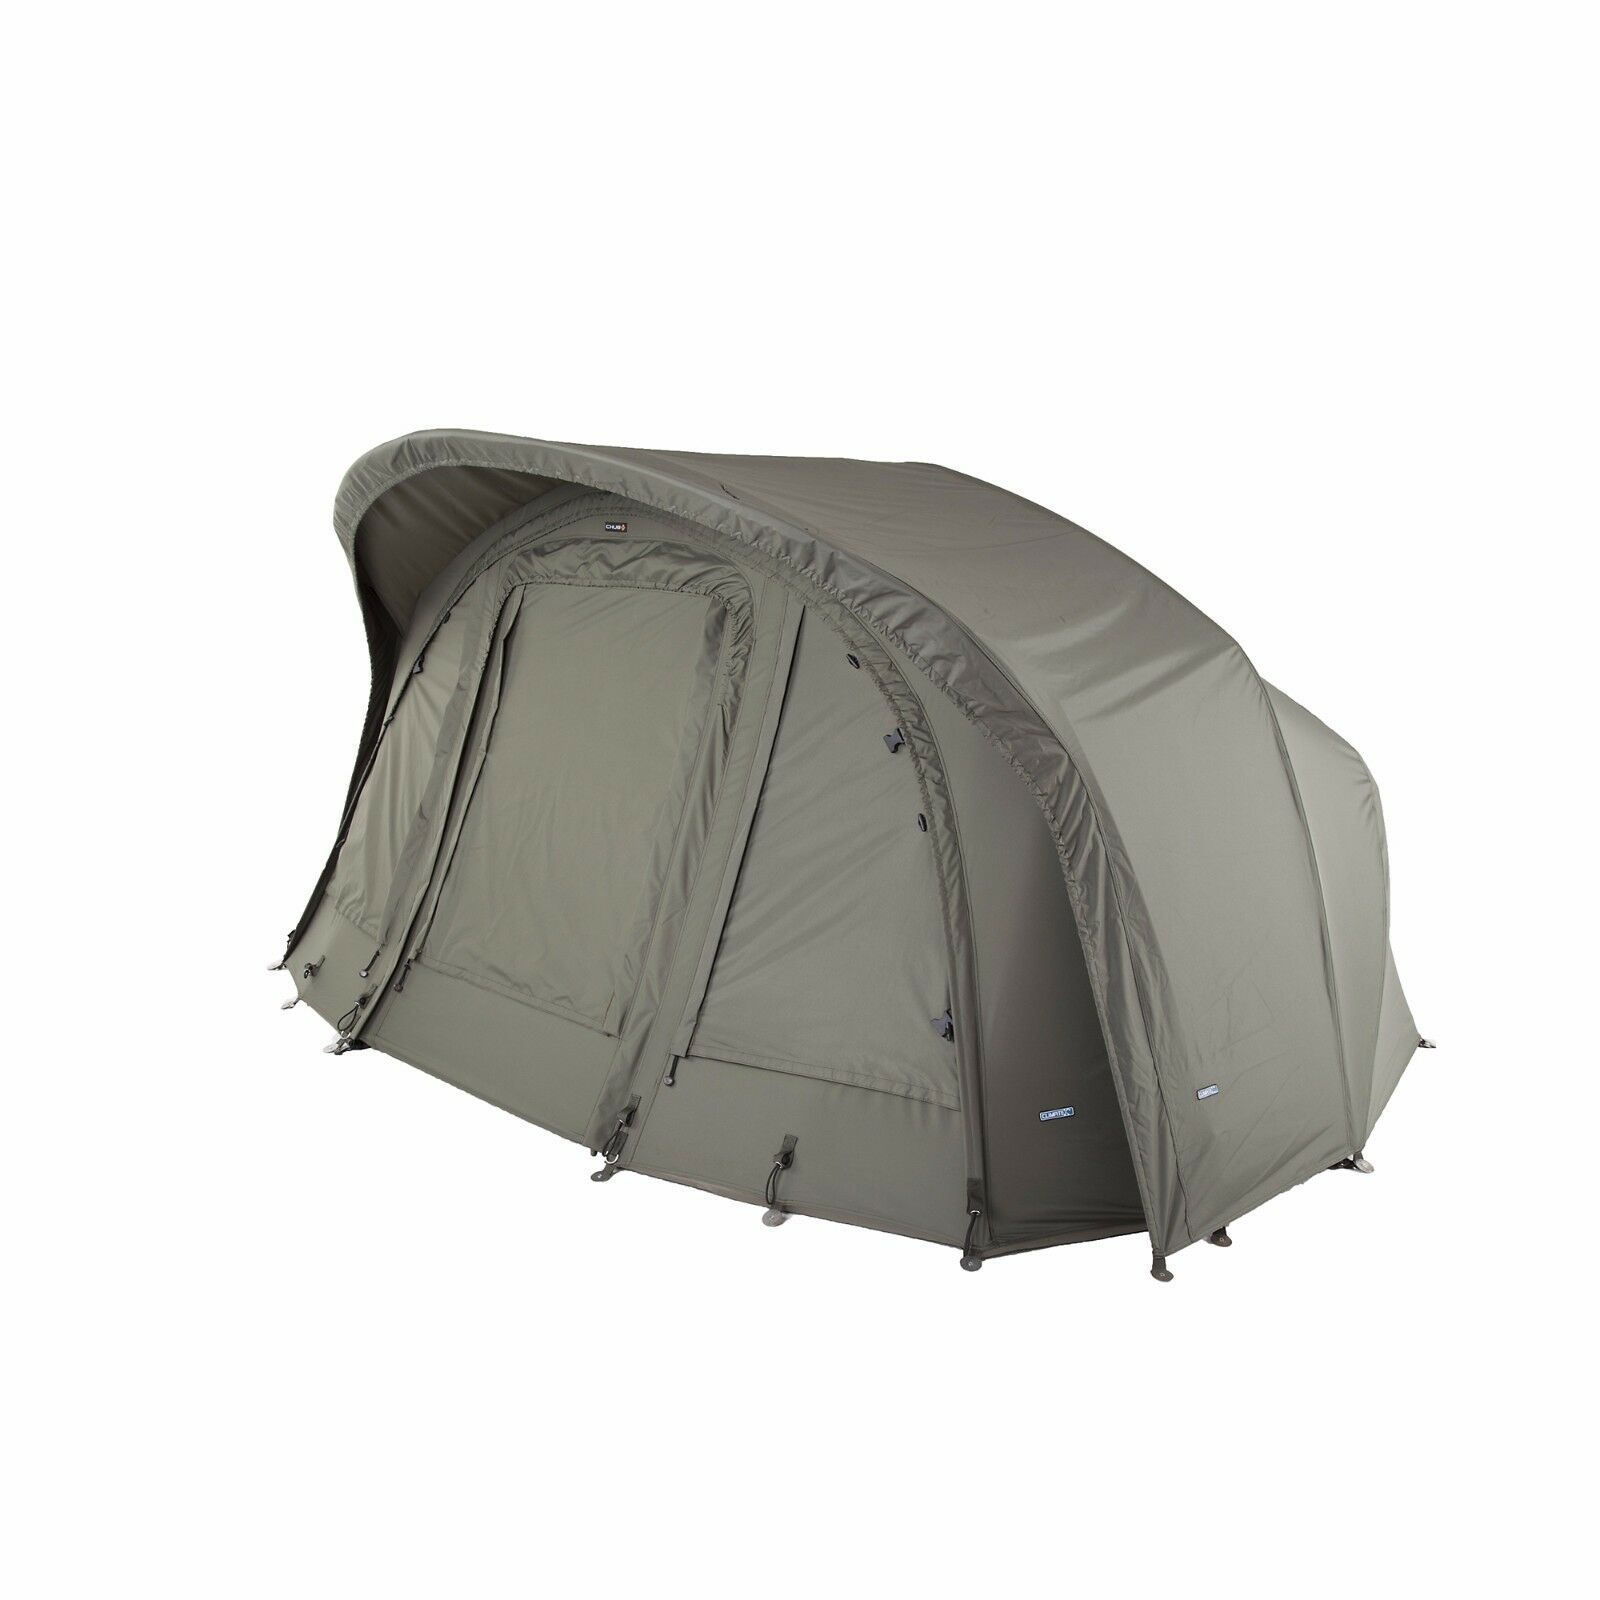 Chub Vantage 1 Man Bivvy Overwrap Carp Fishing Shelter with Climatex Fabric